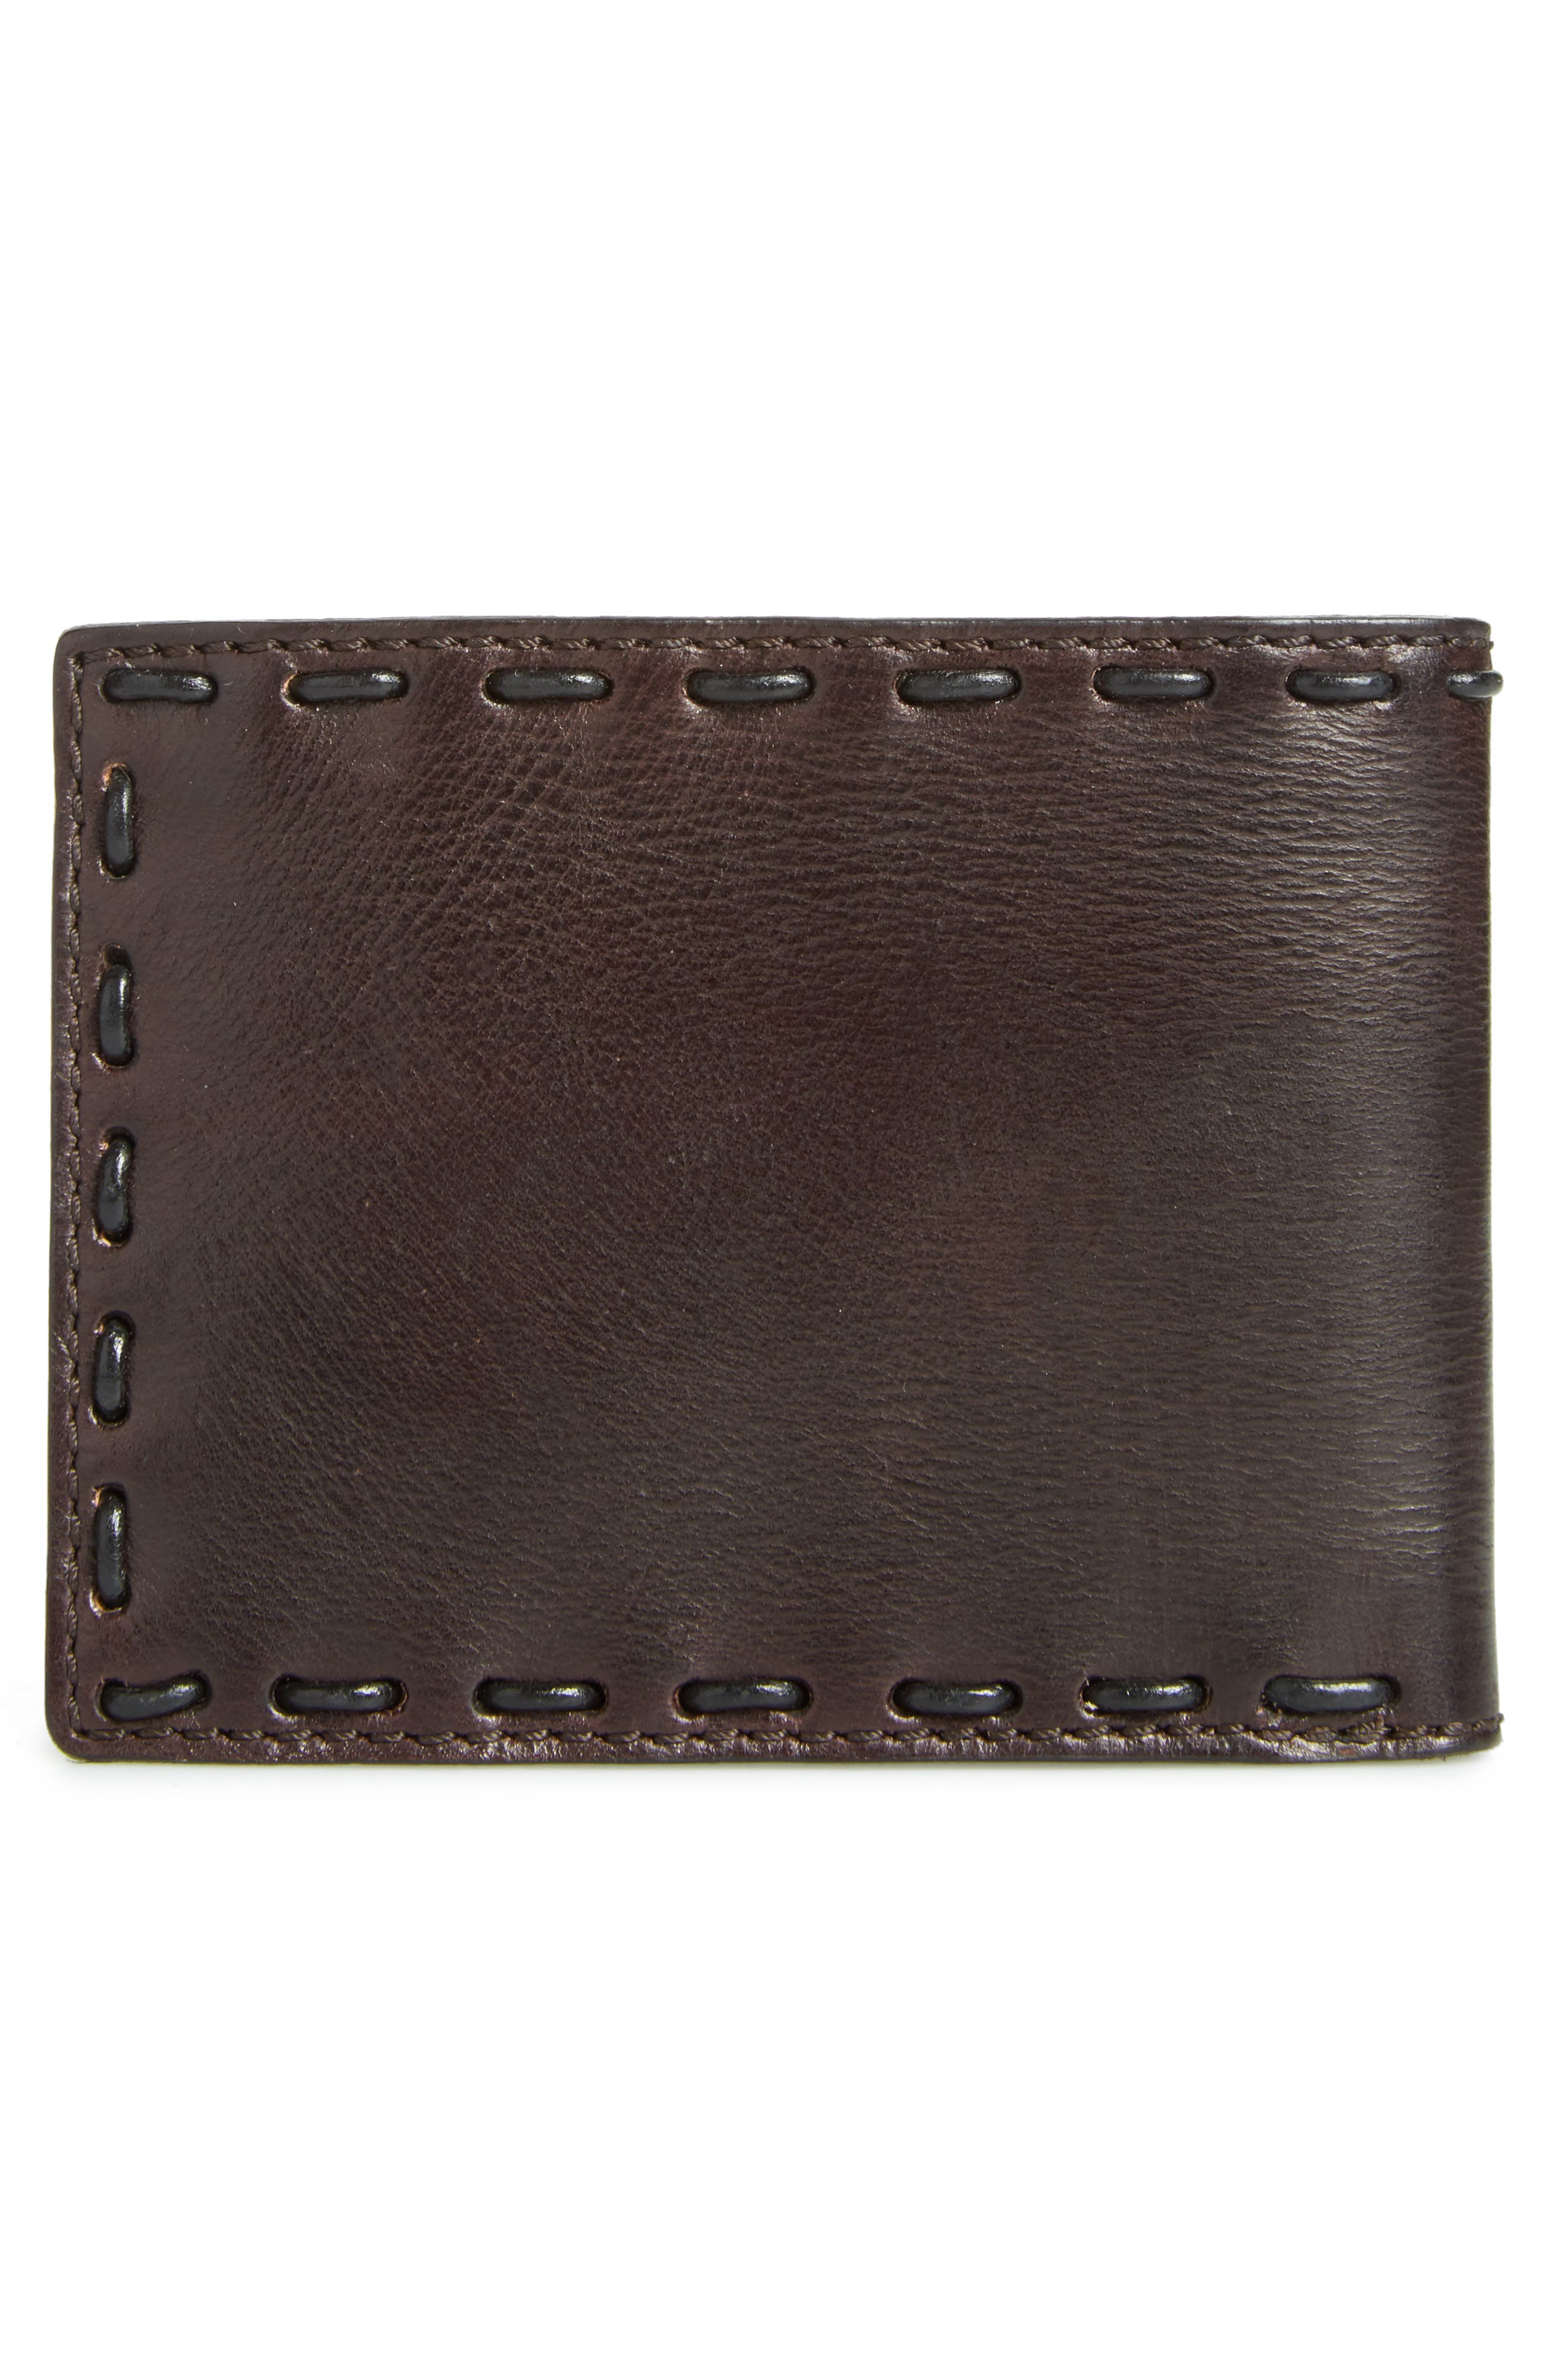 Pickstitch Leather Bifold Wallet,                             Alternate thumbnail 6, color,